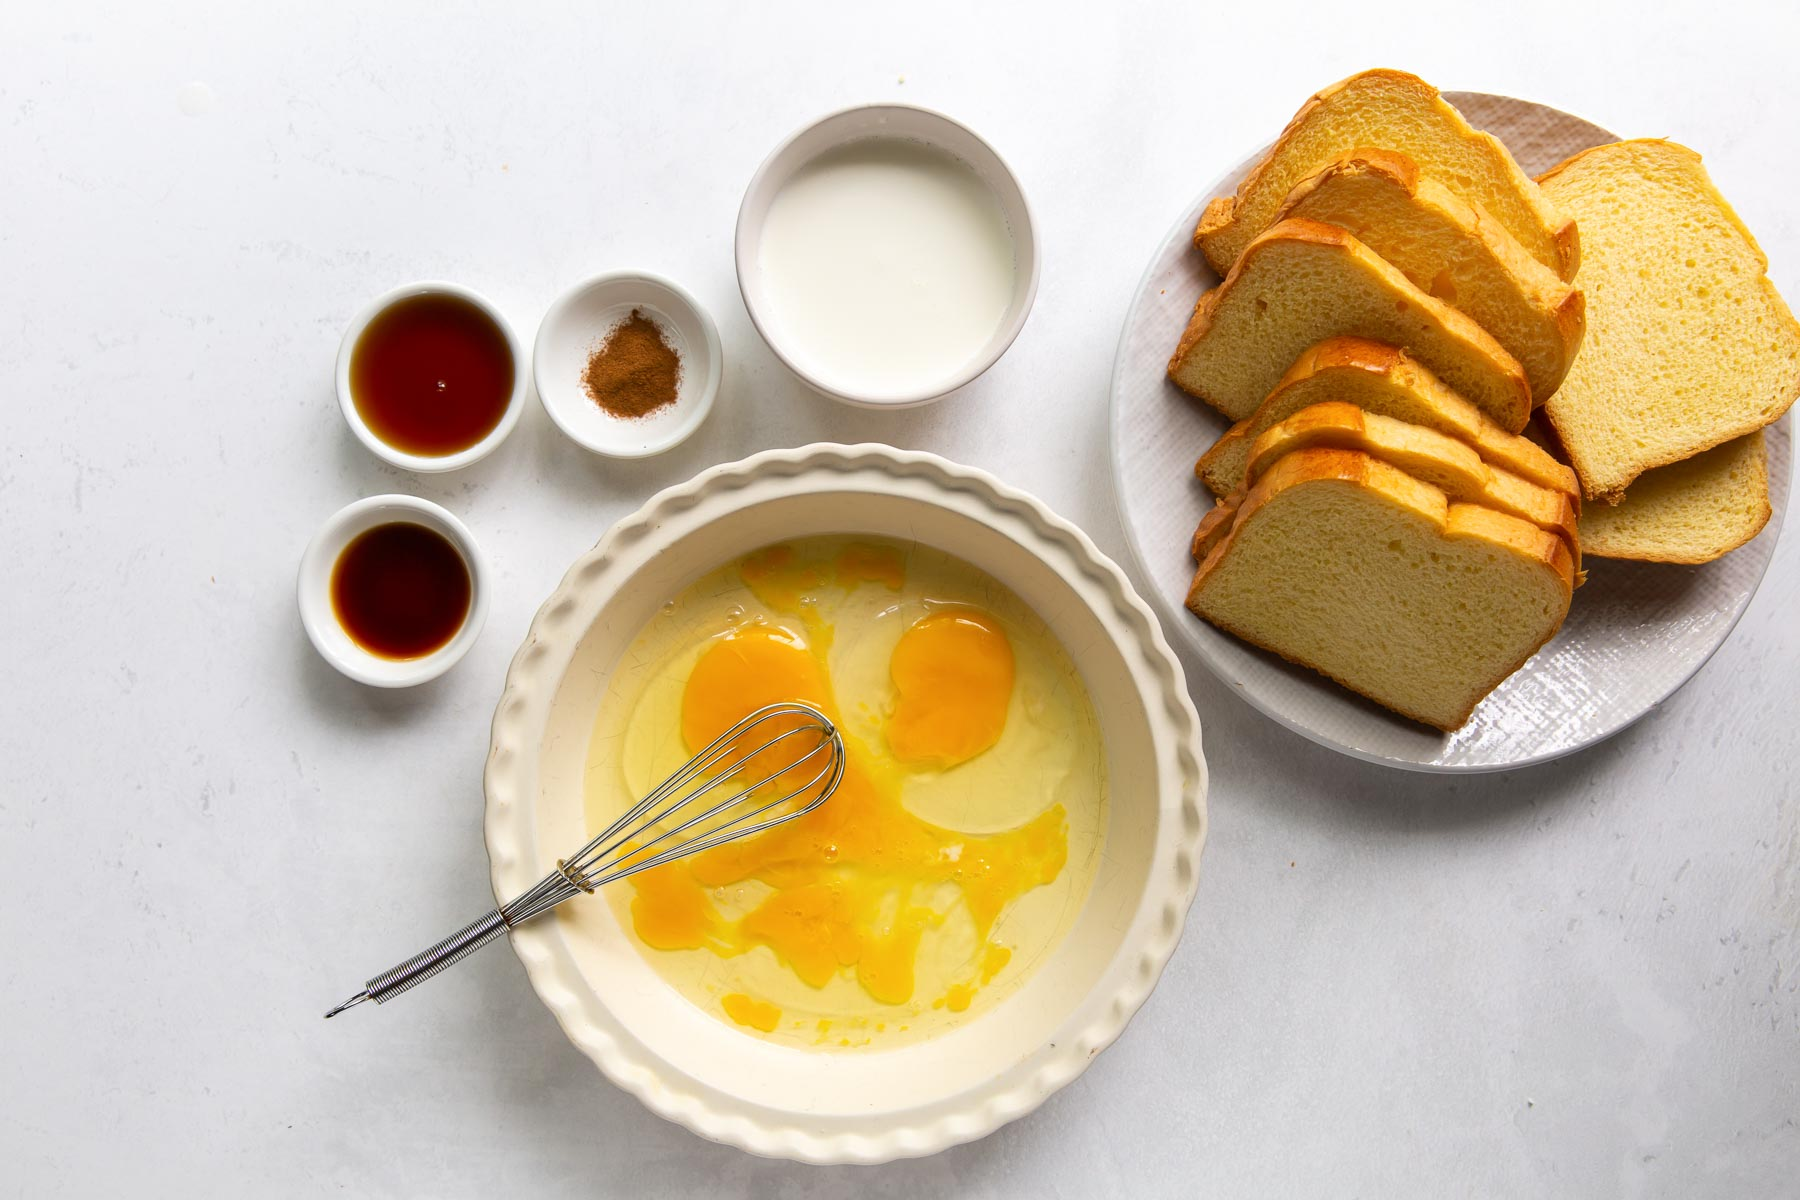 eggs and whisk in a pie plate with other ingredients in background